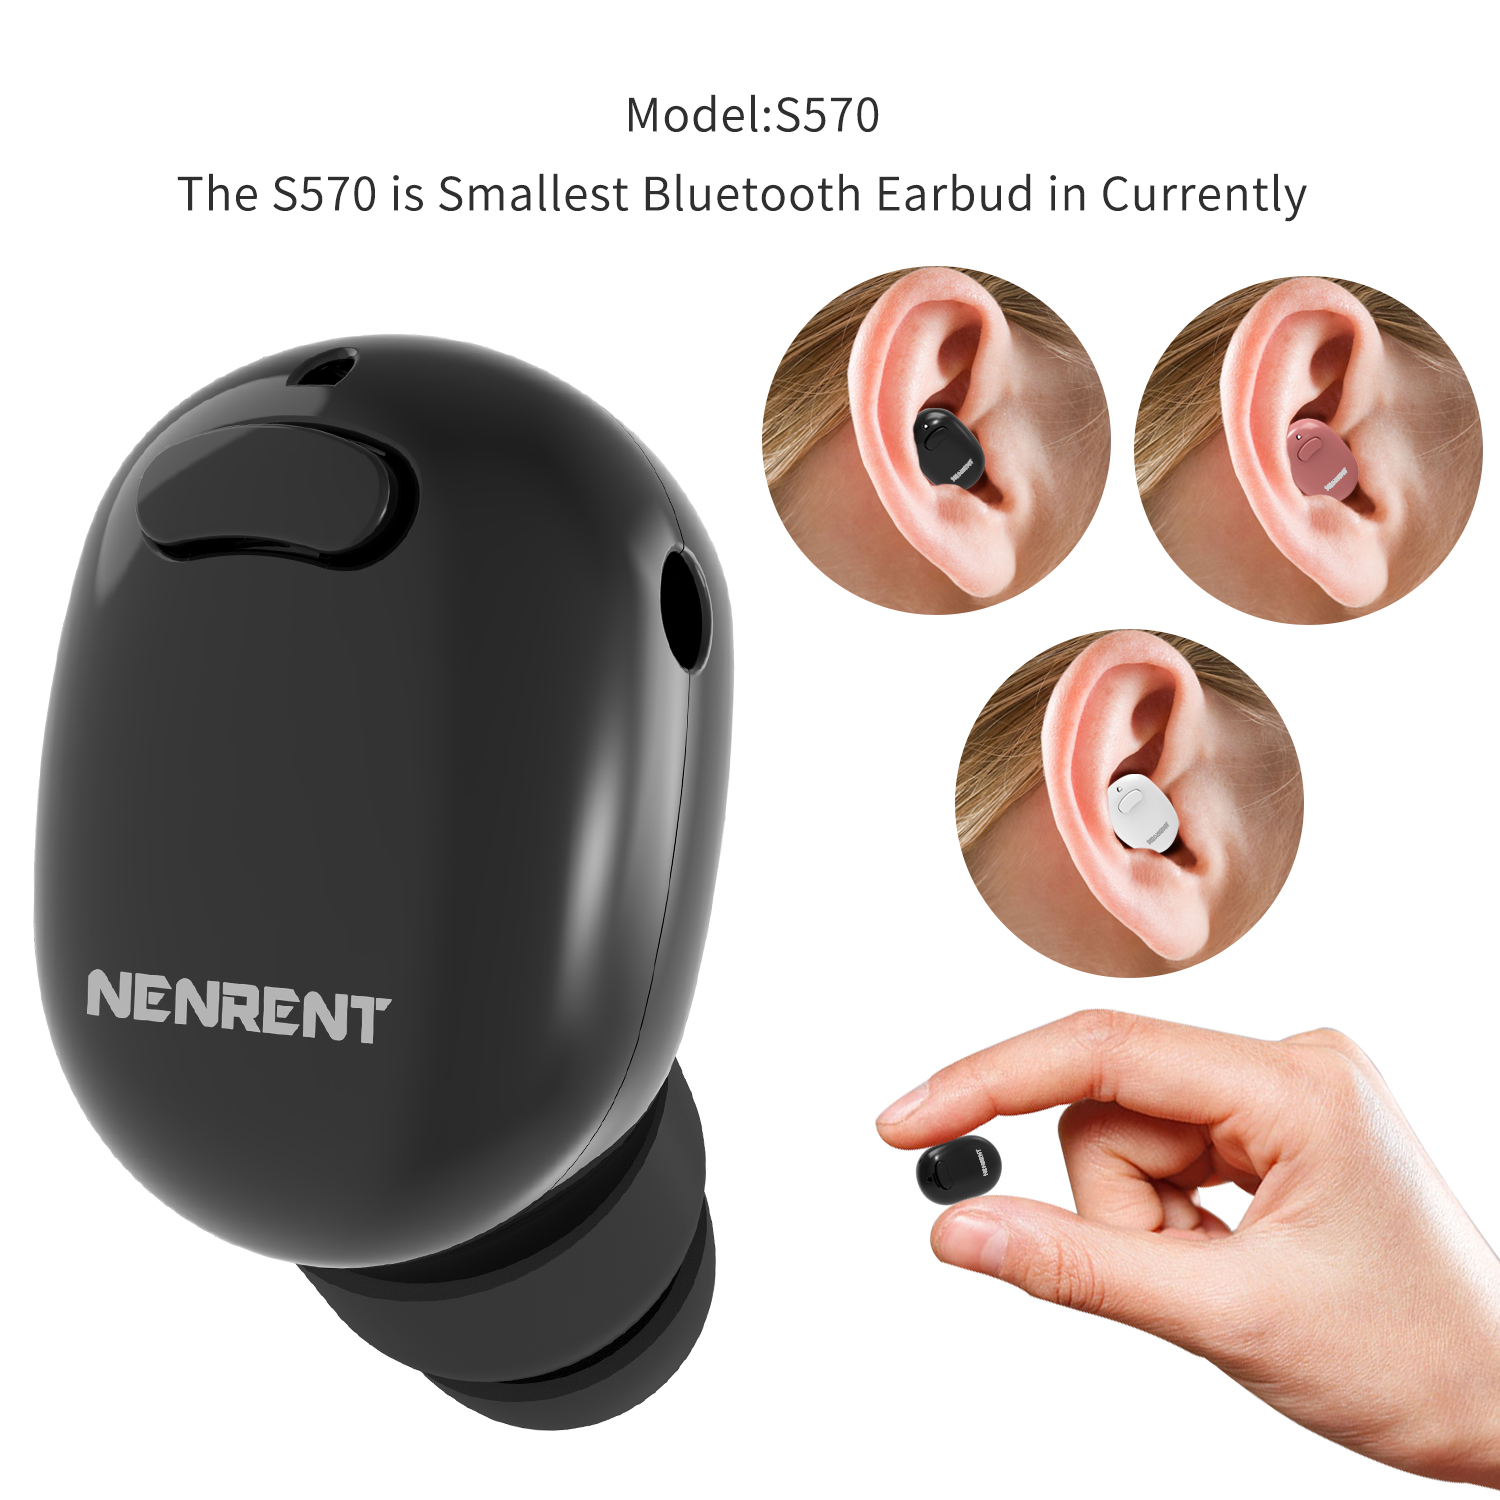 NENRENT USB Charging Cable for S570 Bluetooth Earbud Earpiece